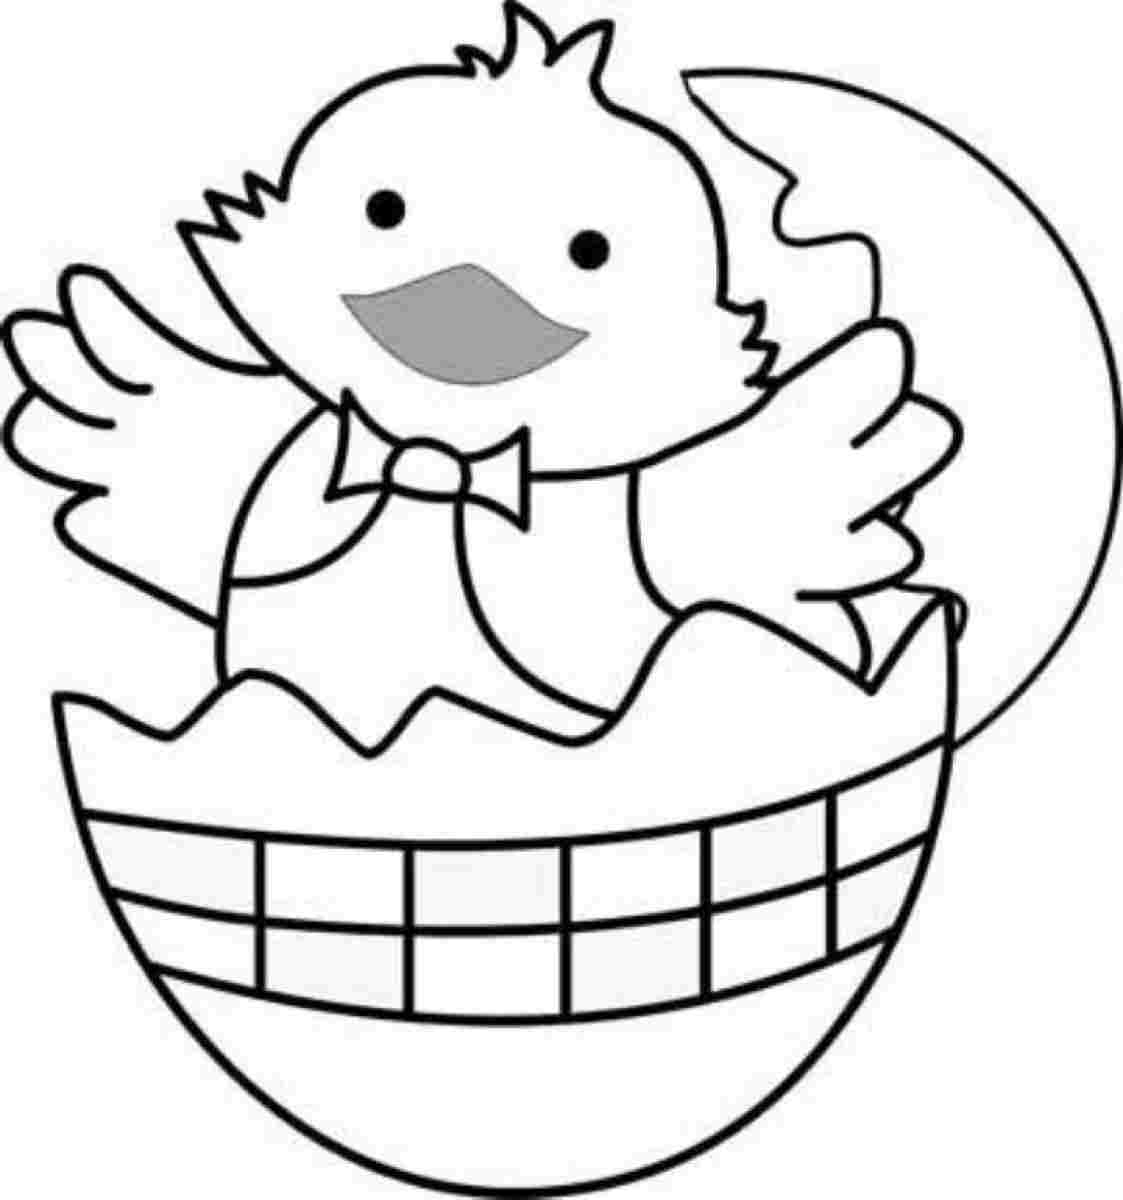 Easter Chick Colouring Sheets Printable For Kindergarten